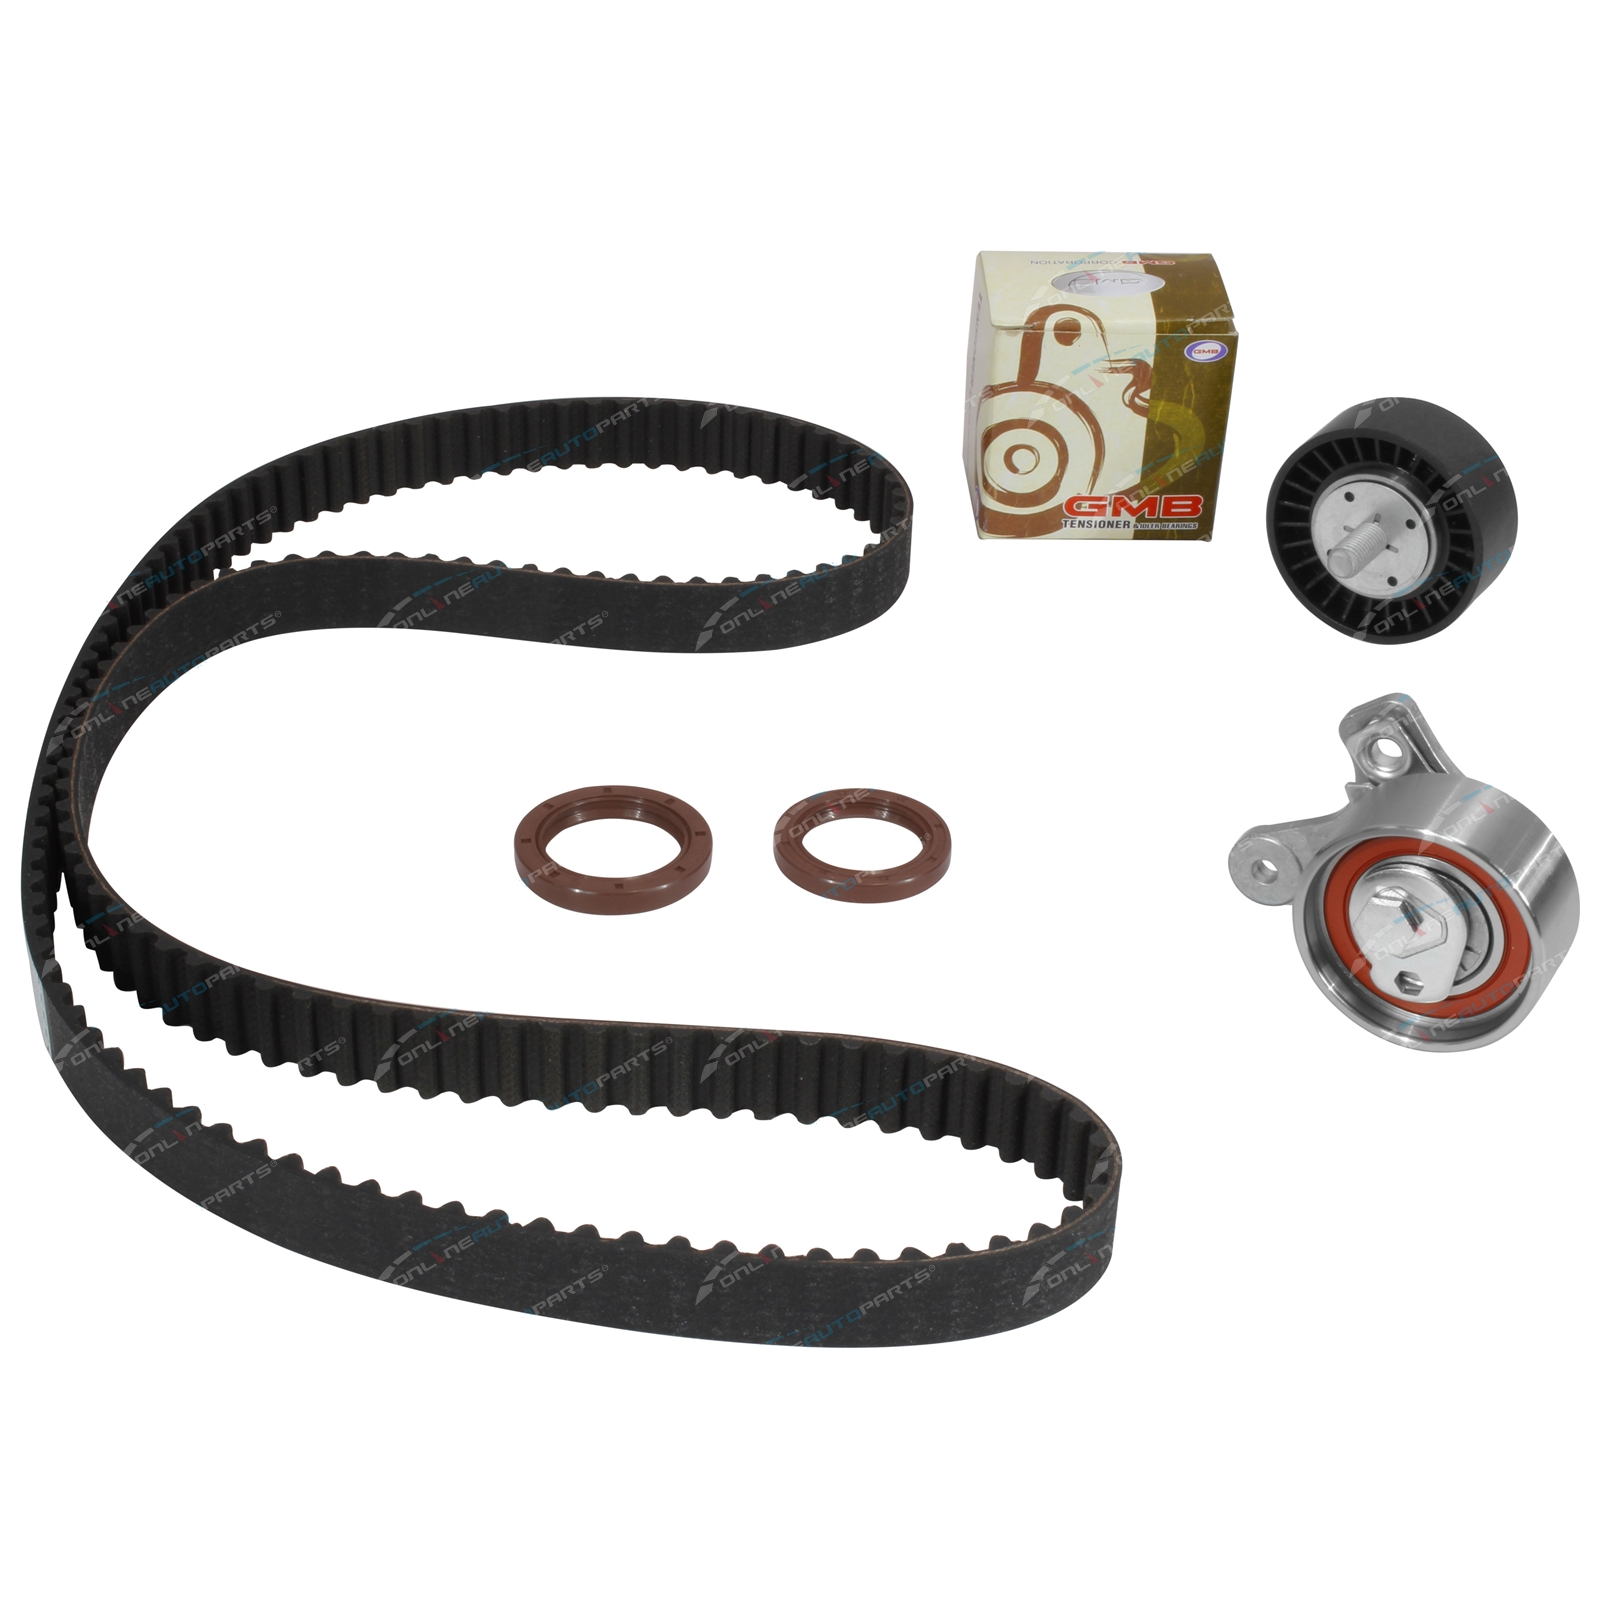 Timing Belt + Tensioner Kit Cruze JG Diesel 2.0L 2009-2011 4cyl Z20S1 1991cc 16v SOHC Engine Holden